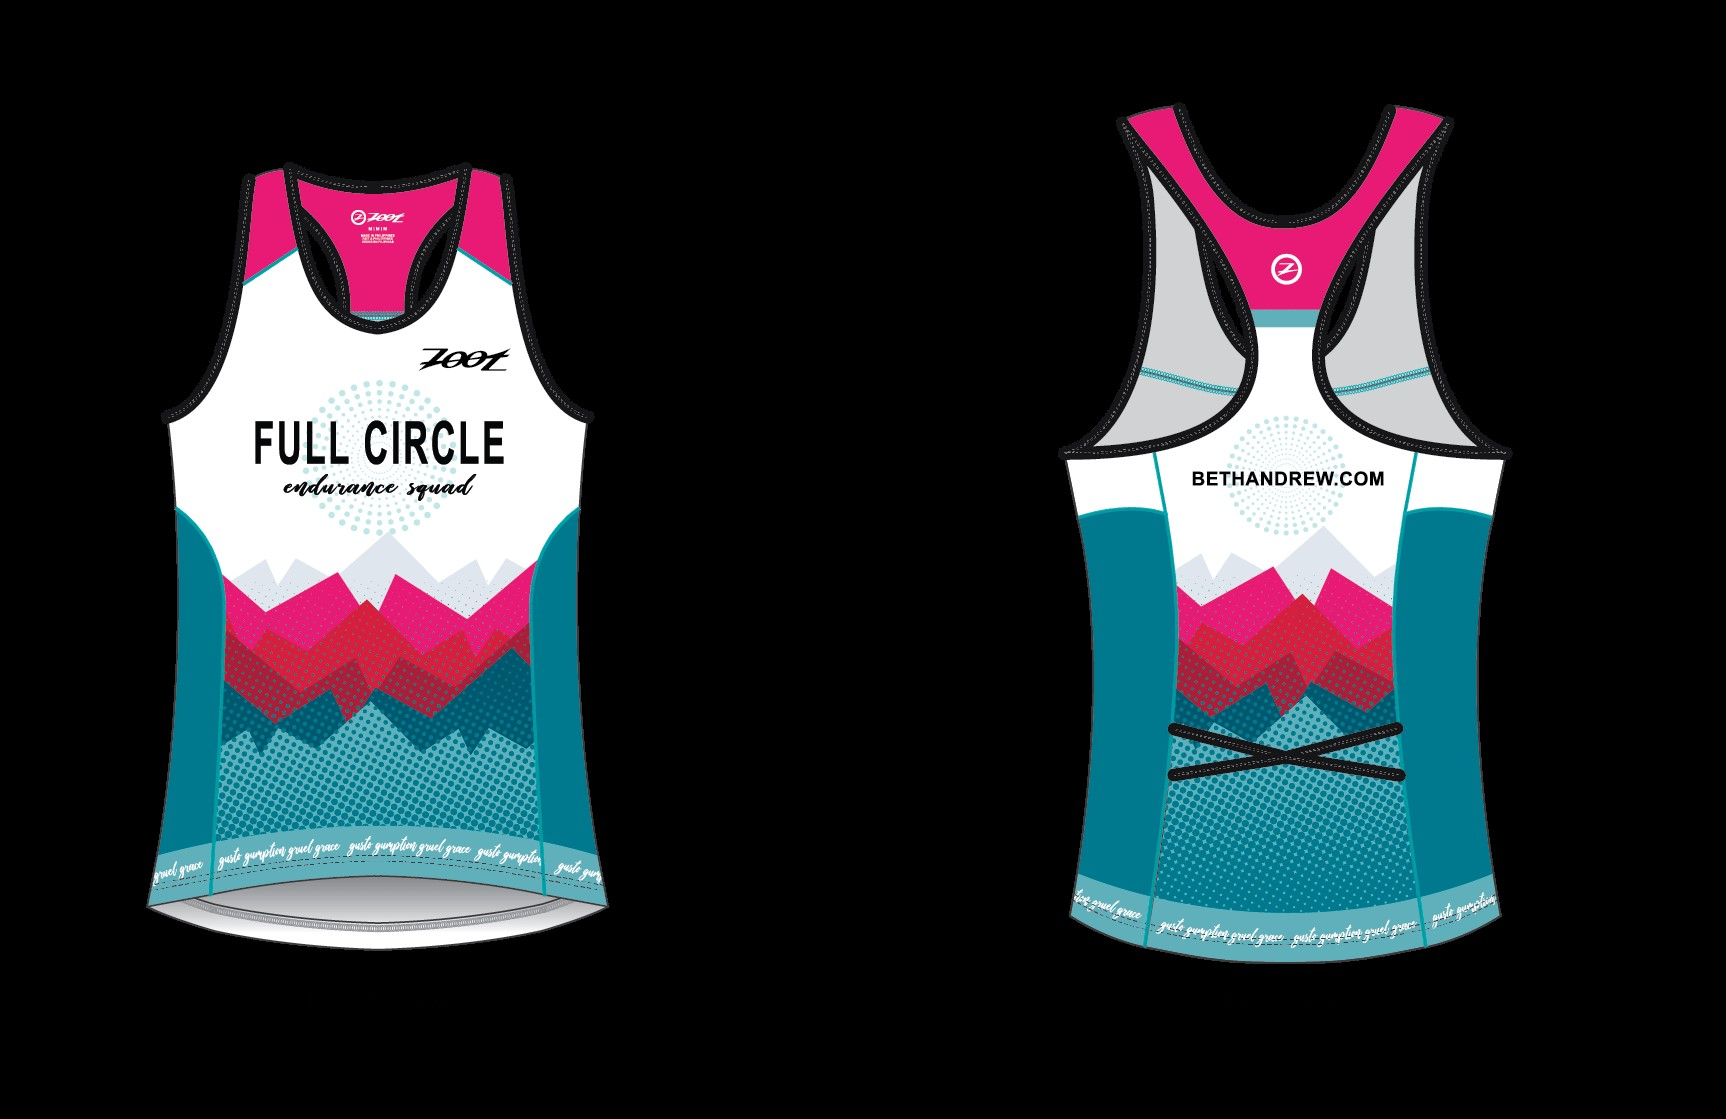 I wanna order more of my new tri kits!!